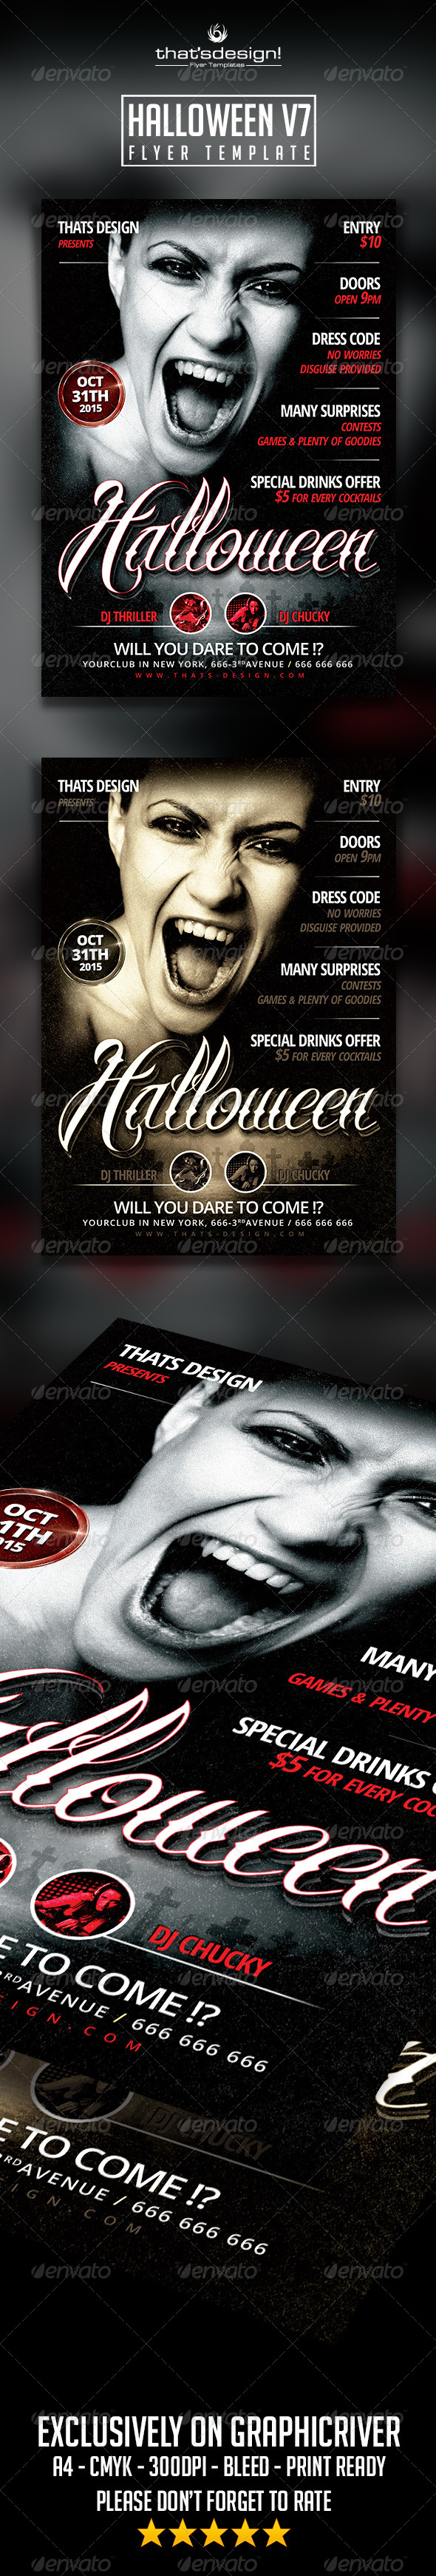 GraphicRiver Halloween Flyer Template V7 8558179